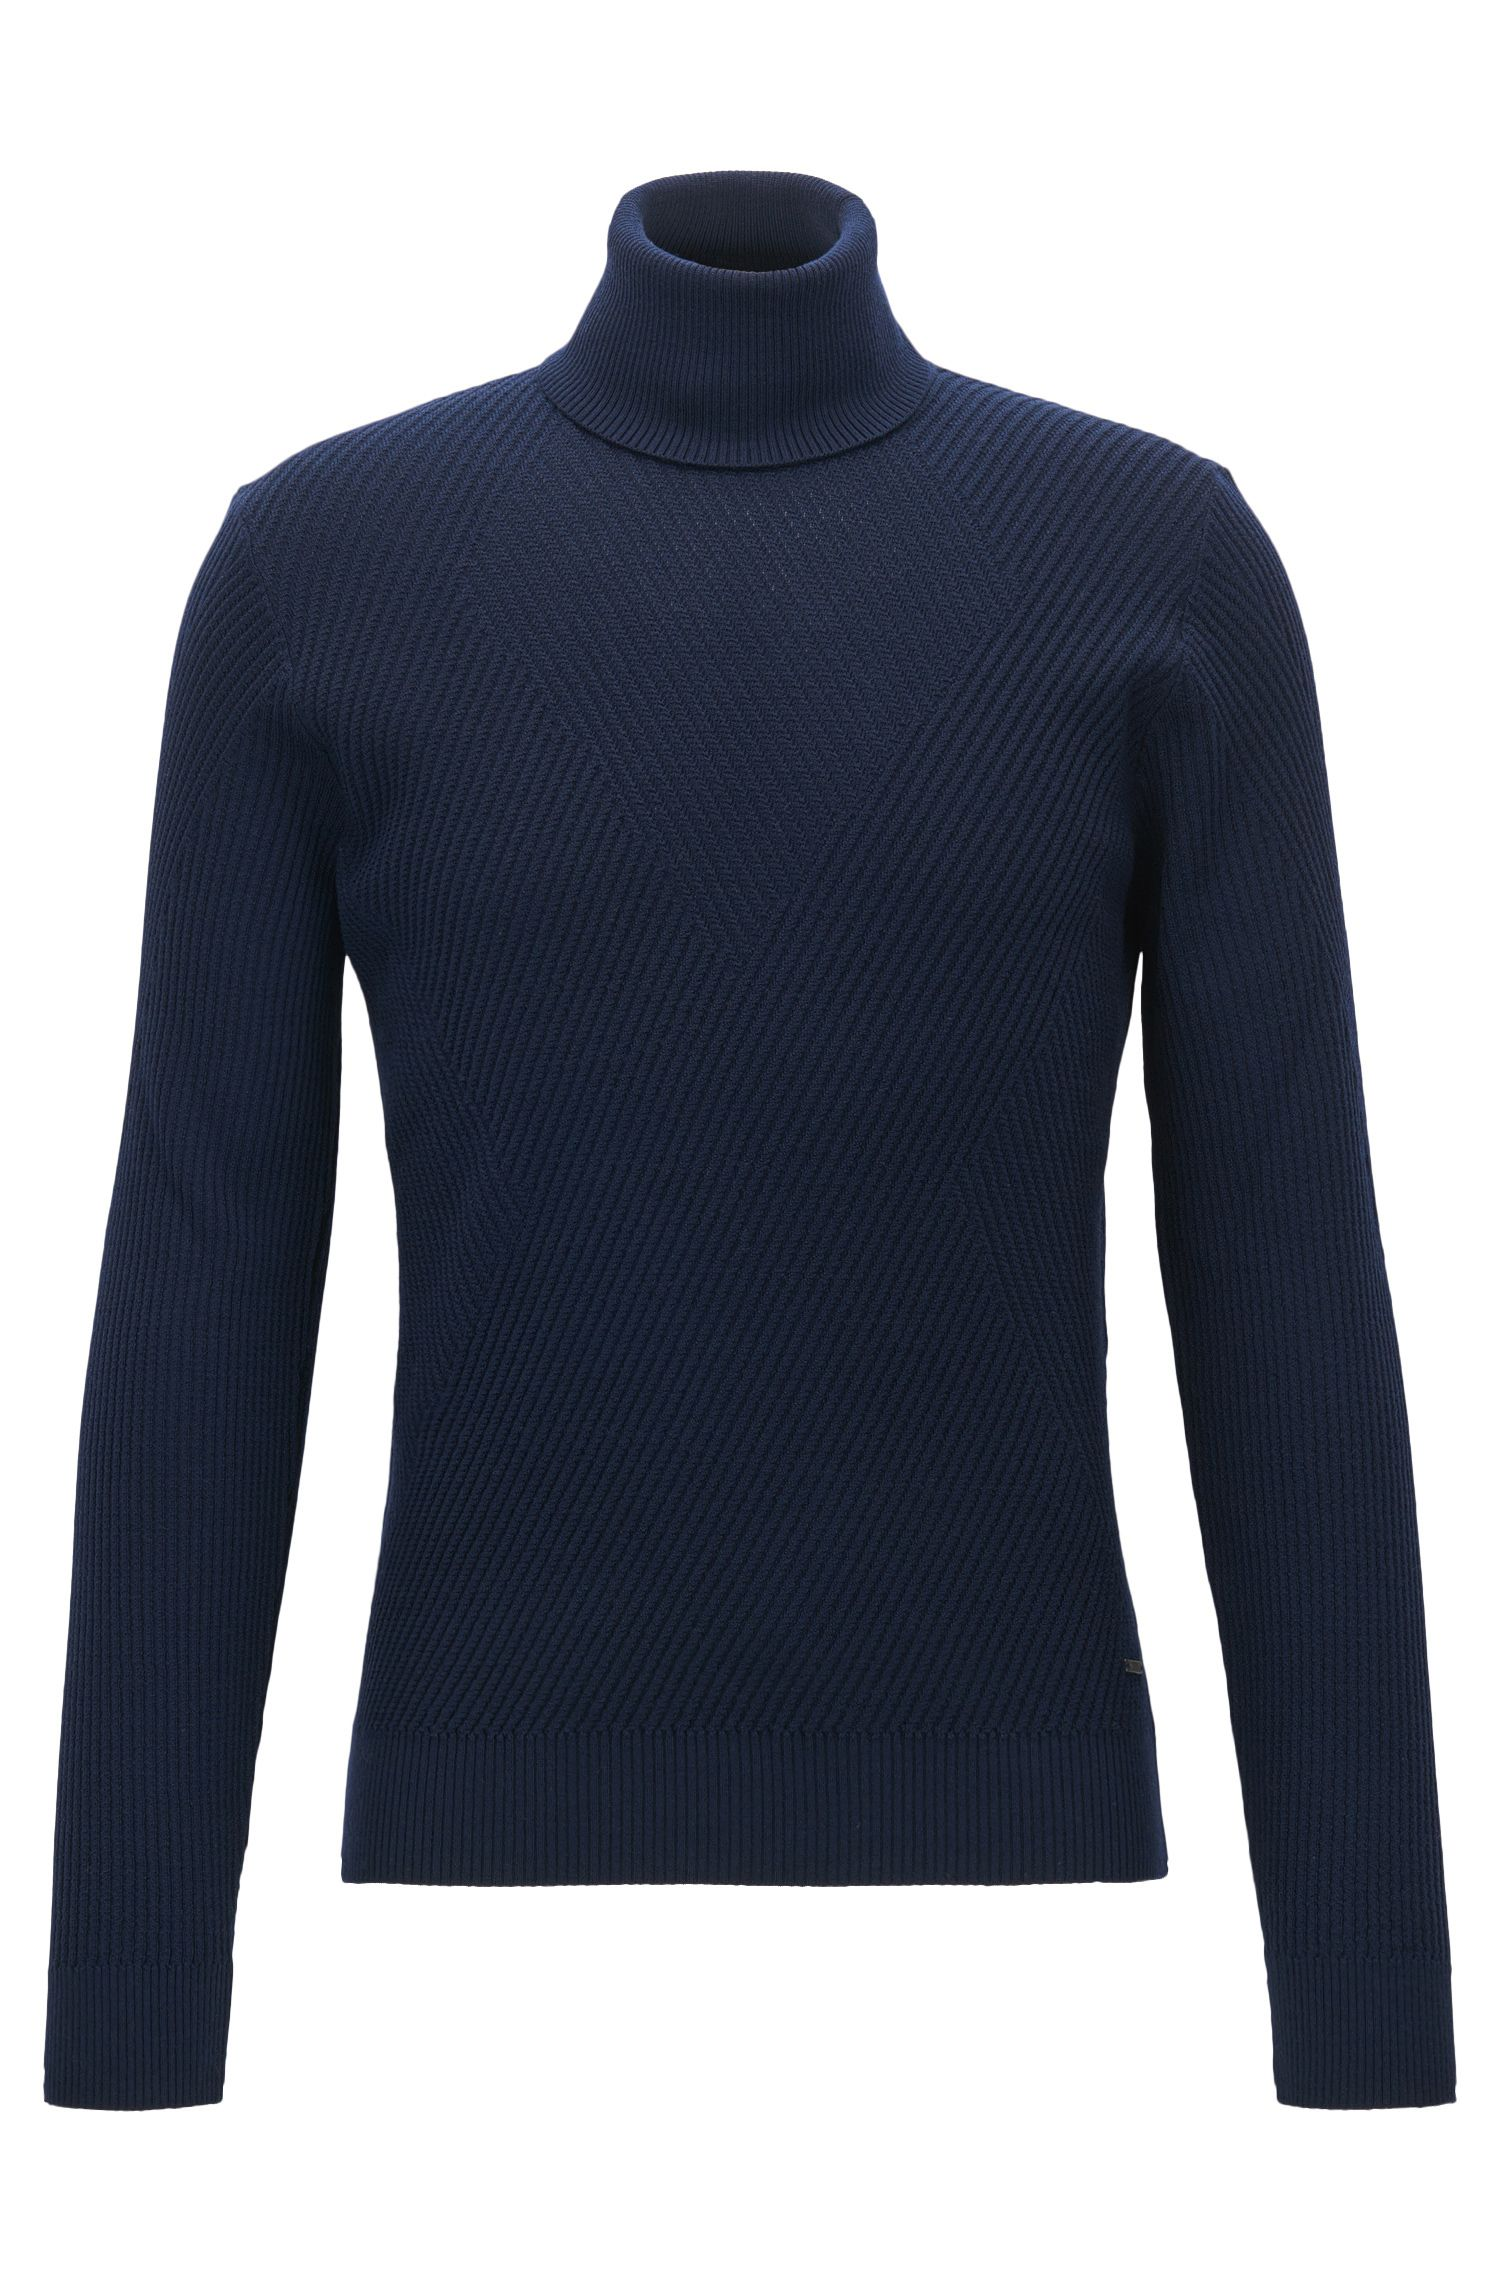 'Nazzaro' | Ribbed Virgin Wool Sweater